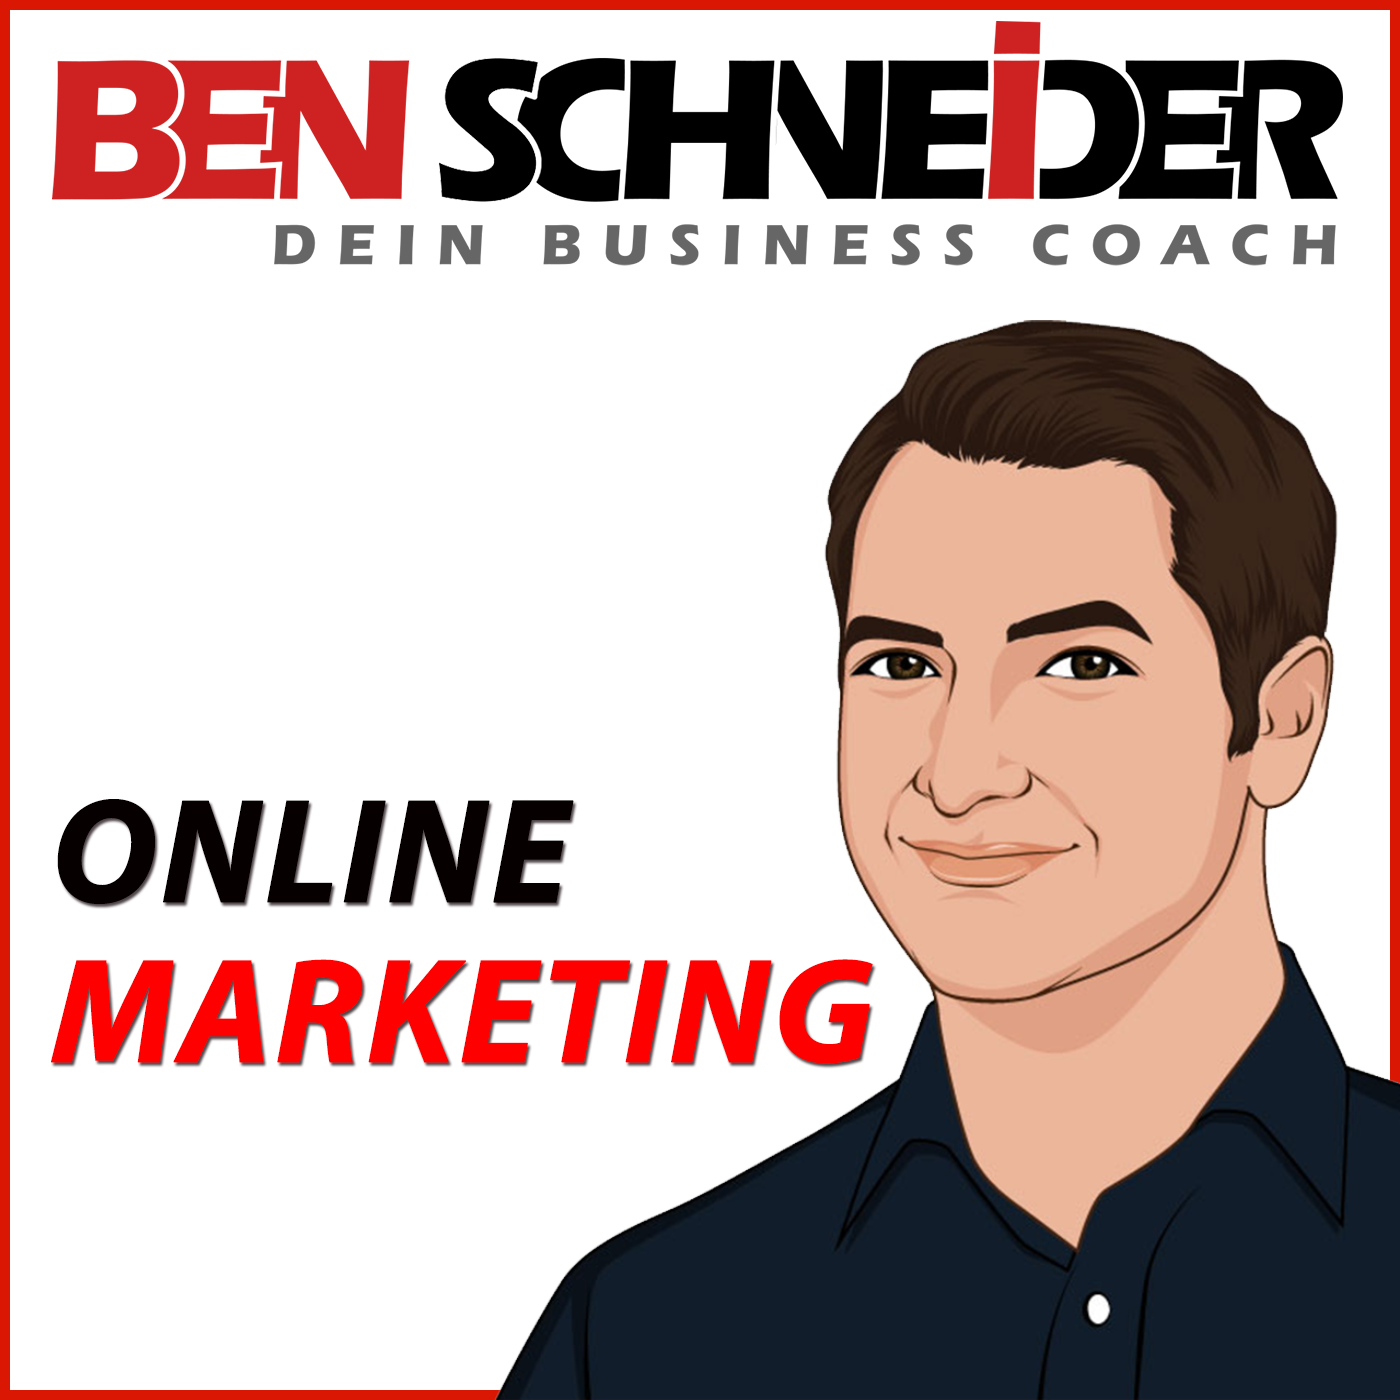 Ben Schneider #DeinBusinessCoach | Online Marketing Strategien und Onlineshop/E-Commerce Fachwissen